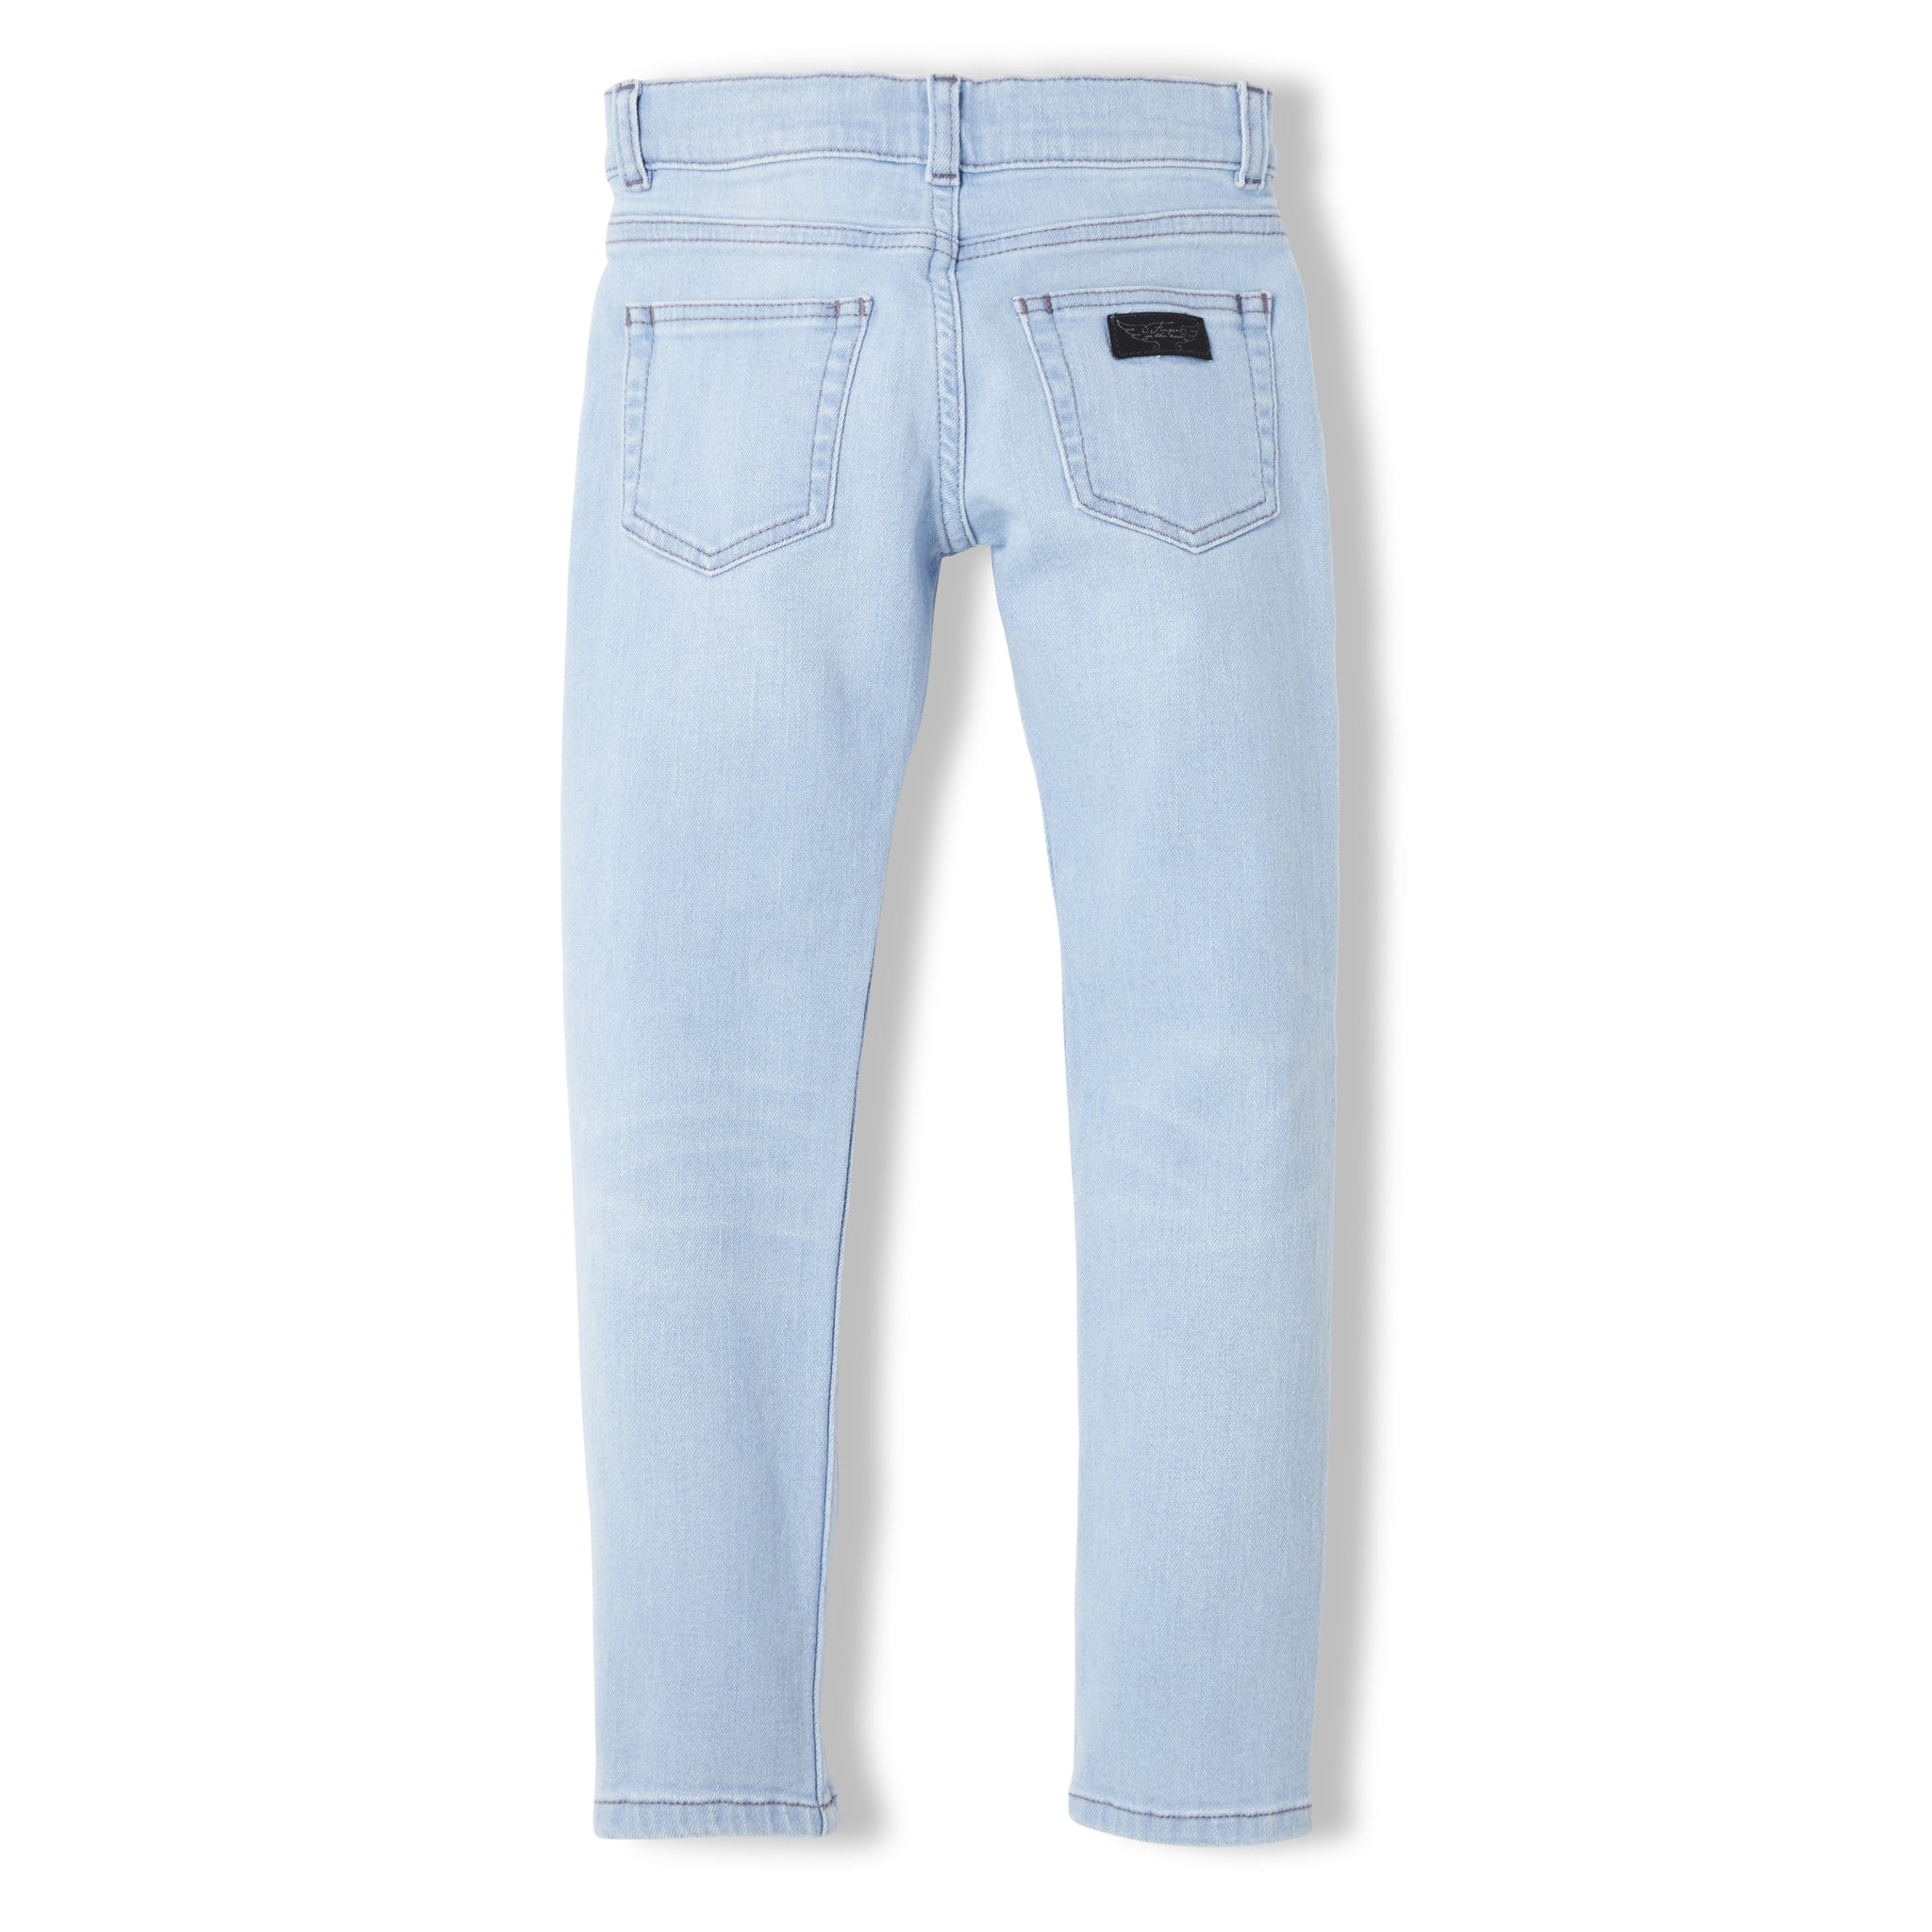 ICON Bleached Blue - Unisex Woven 5 Pocket Slim Fit Jeans 2